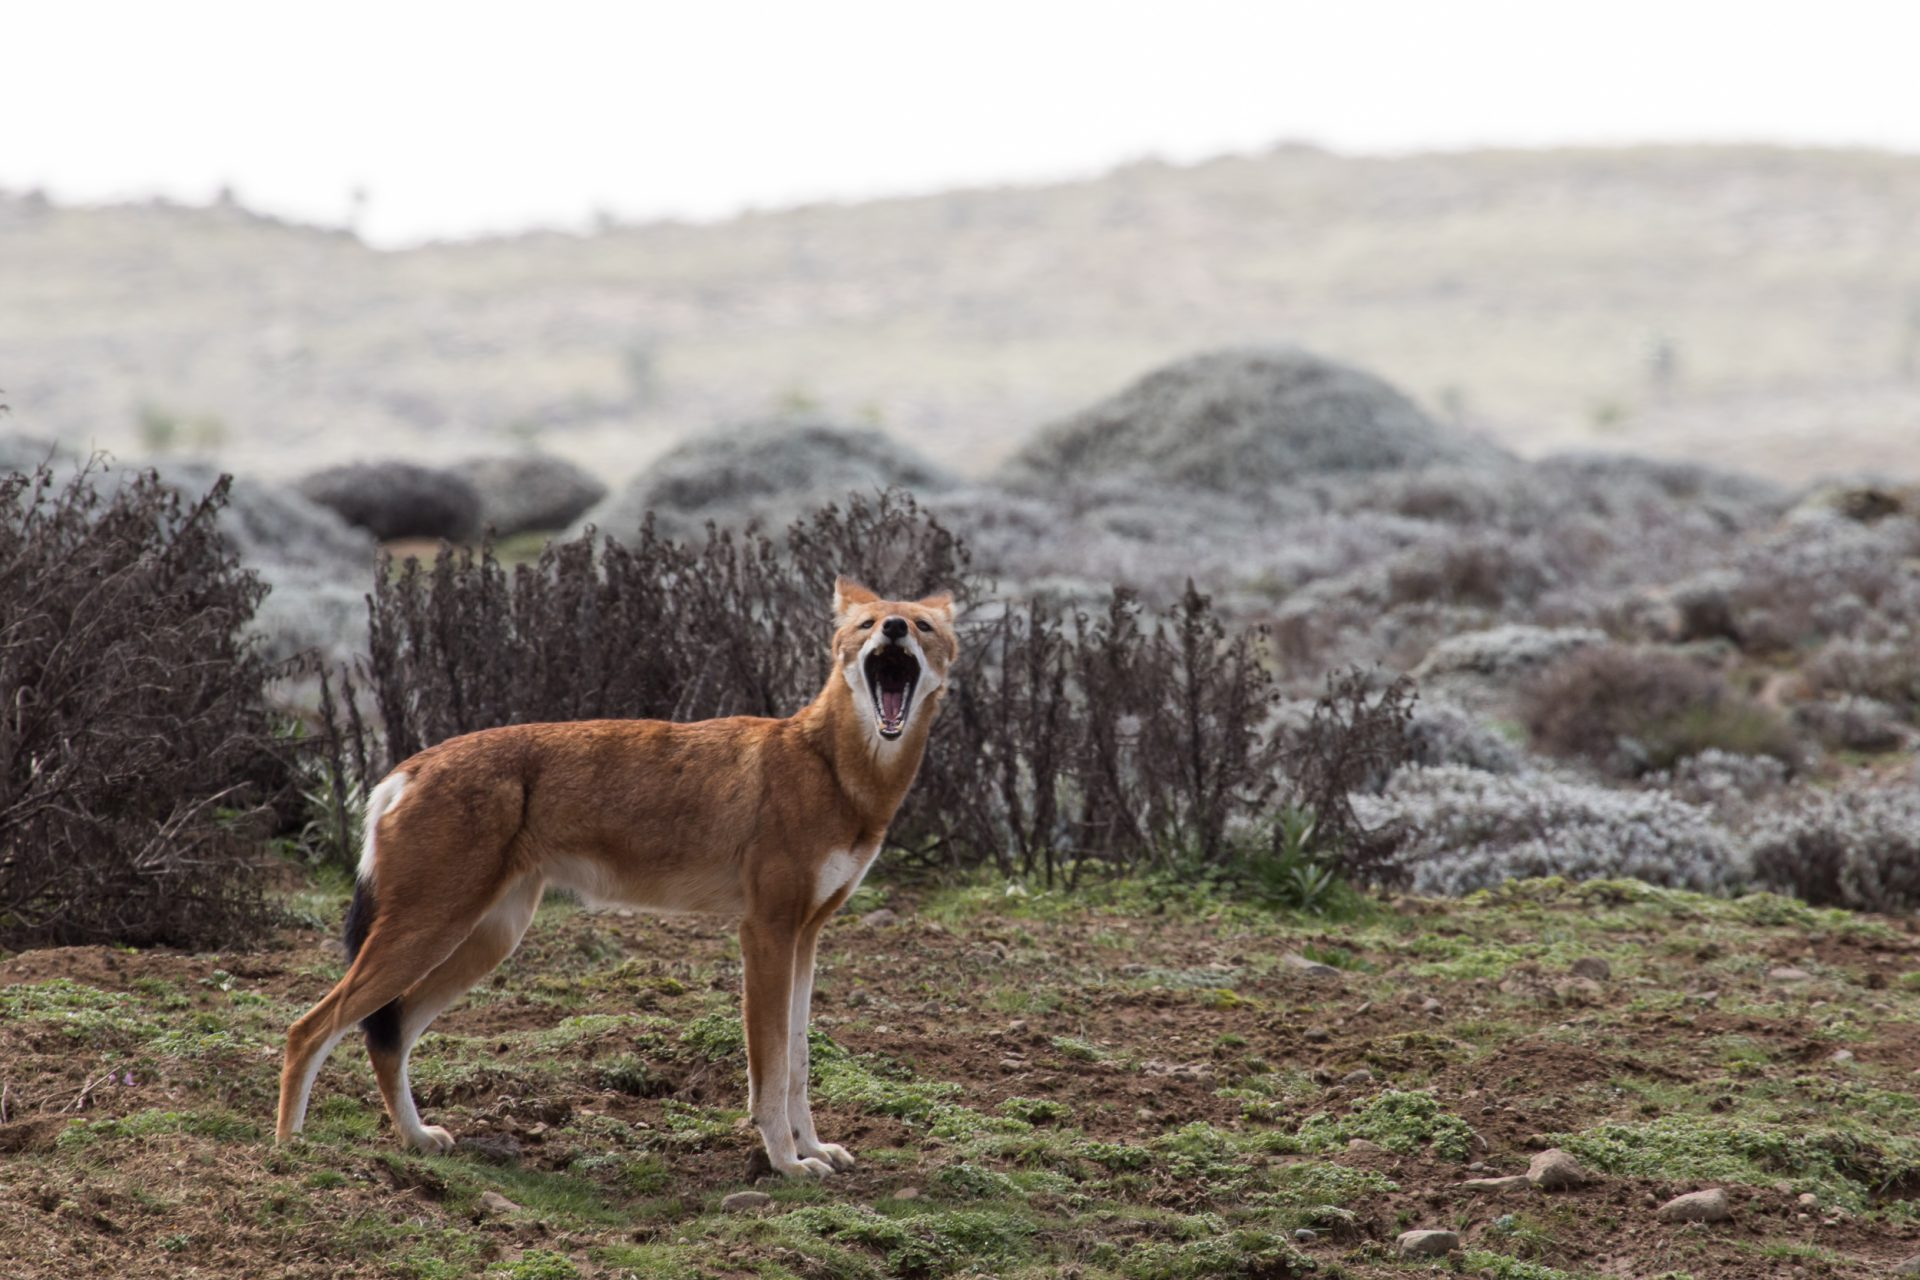 The endemic Ethiopian Wolf